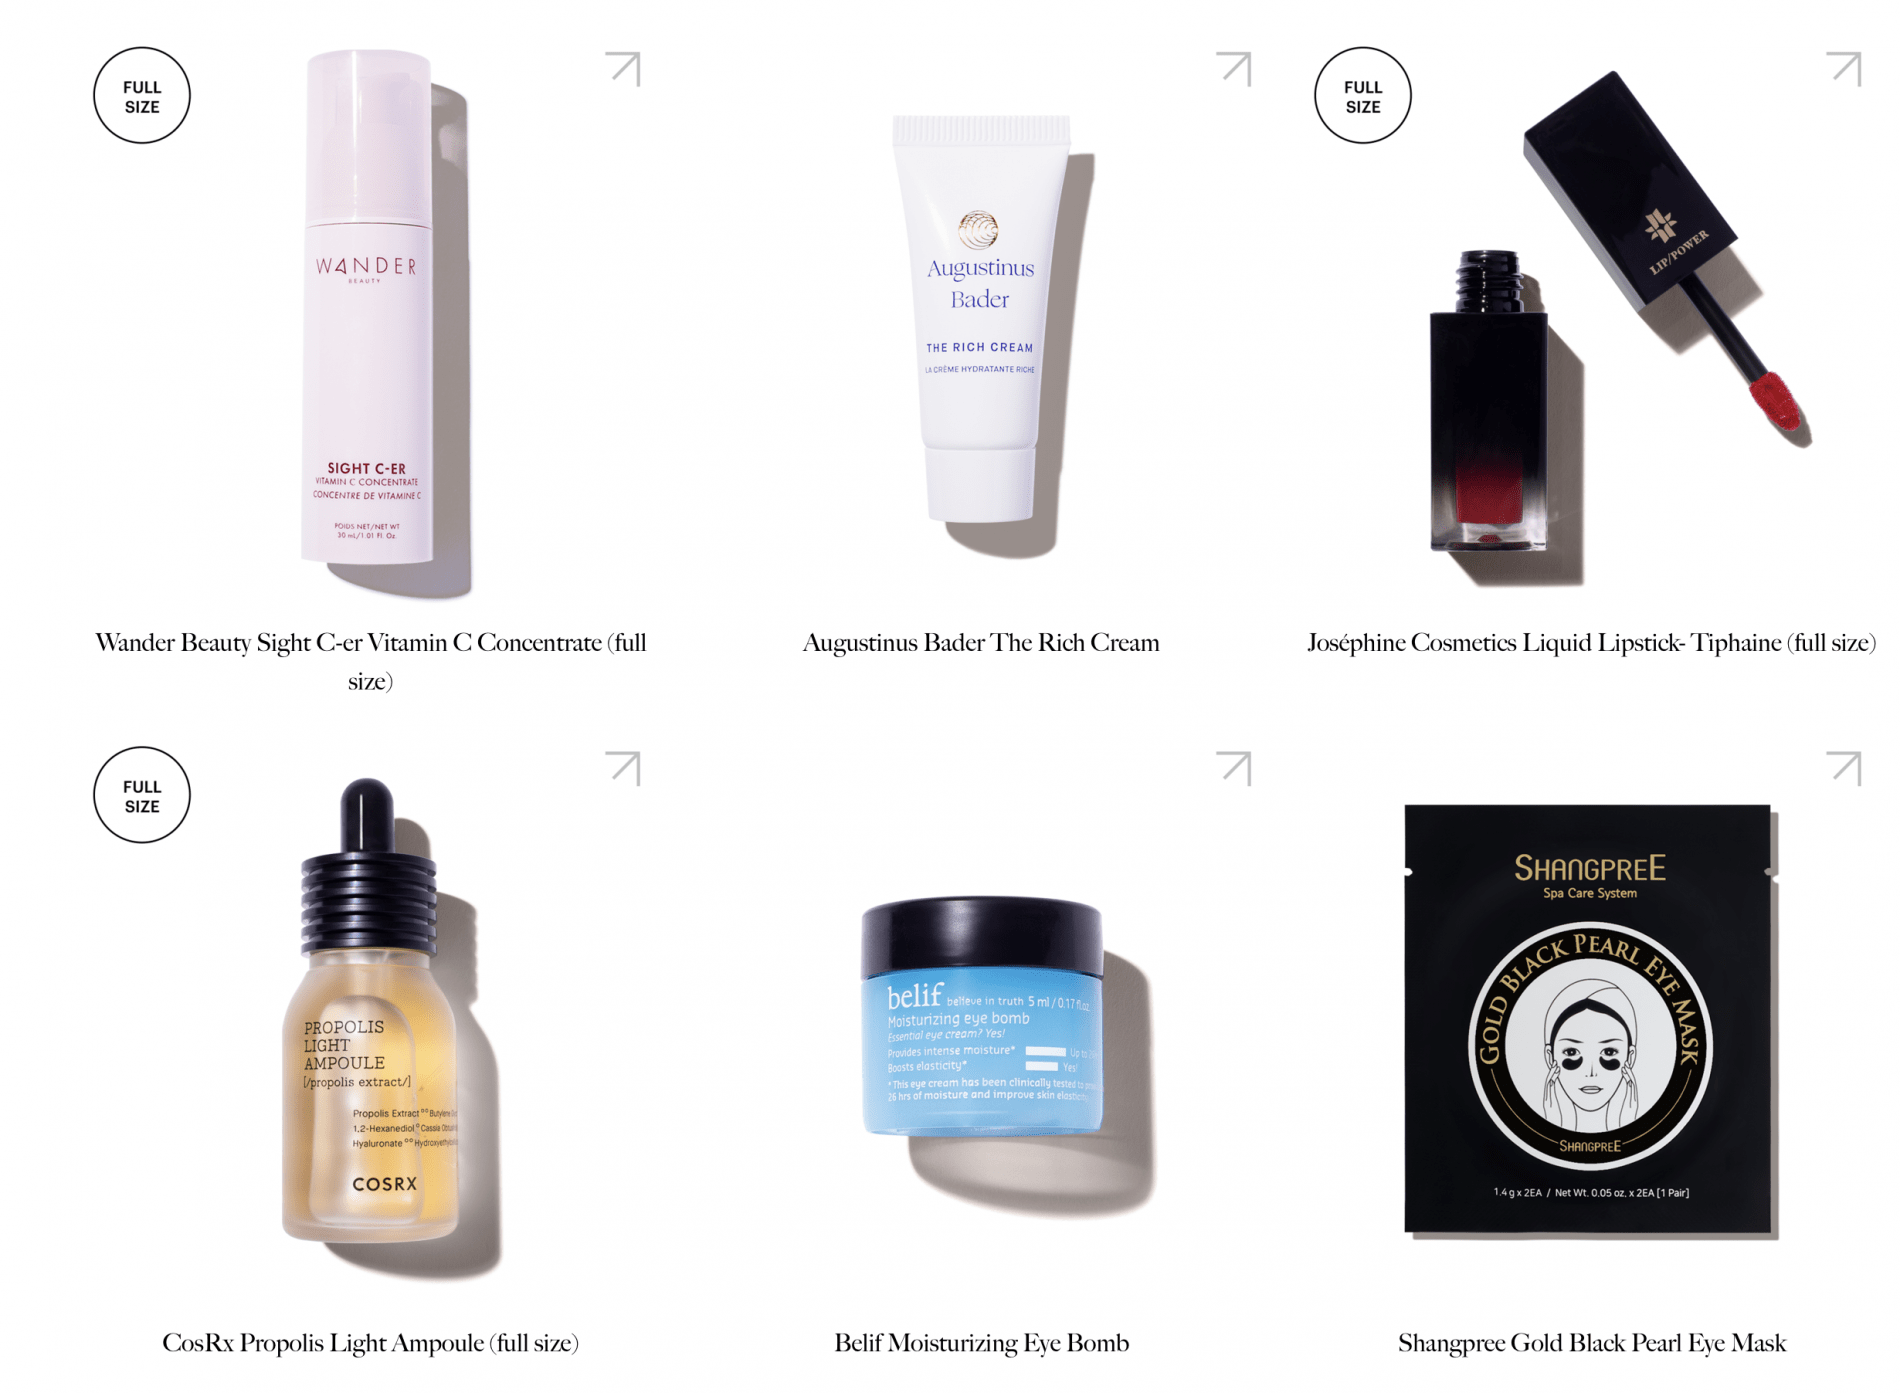 Allure Beauty Box - May 2021 Box on Sale Now + Two FREE New Subscriber Gifts